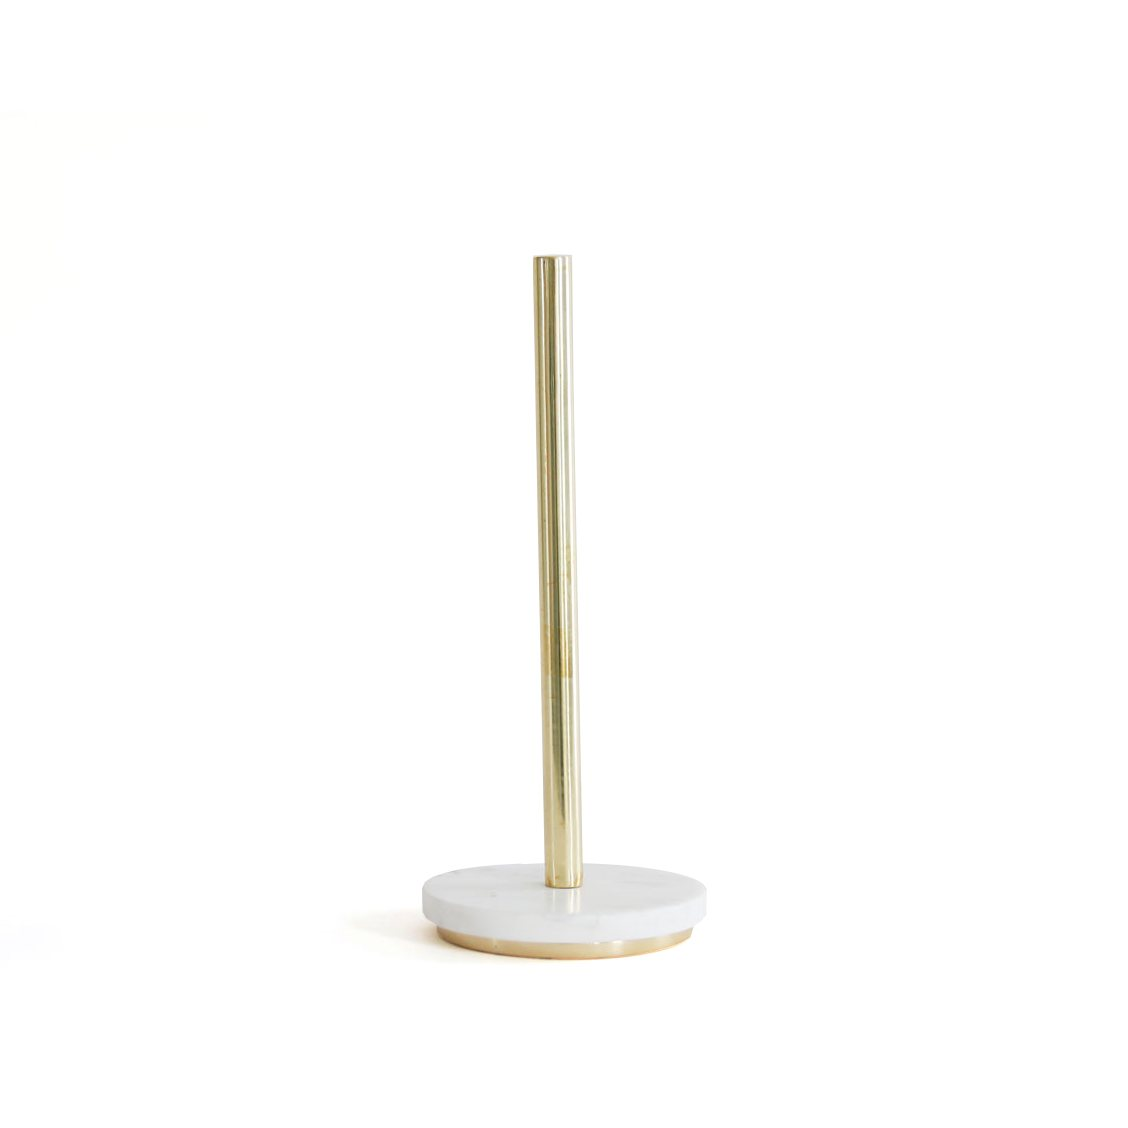 Mara Paper Towel Holder, brass.